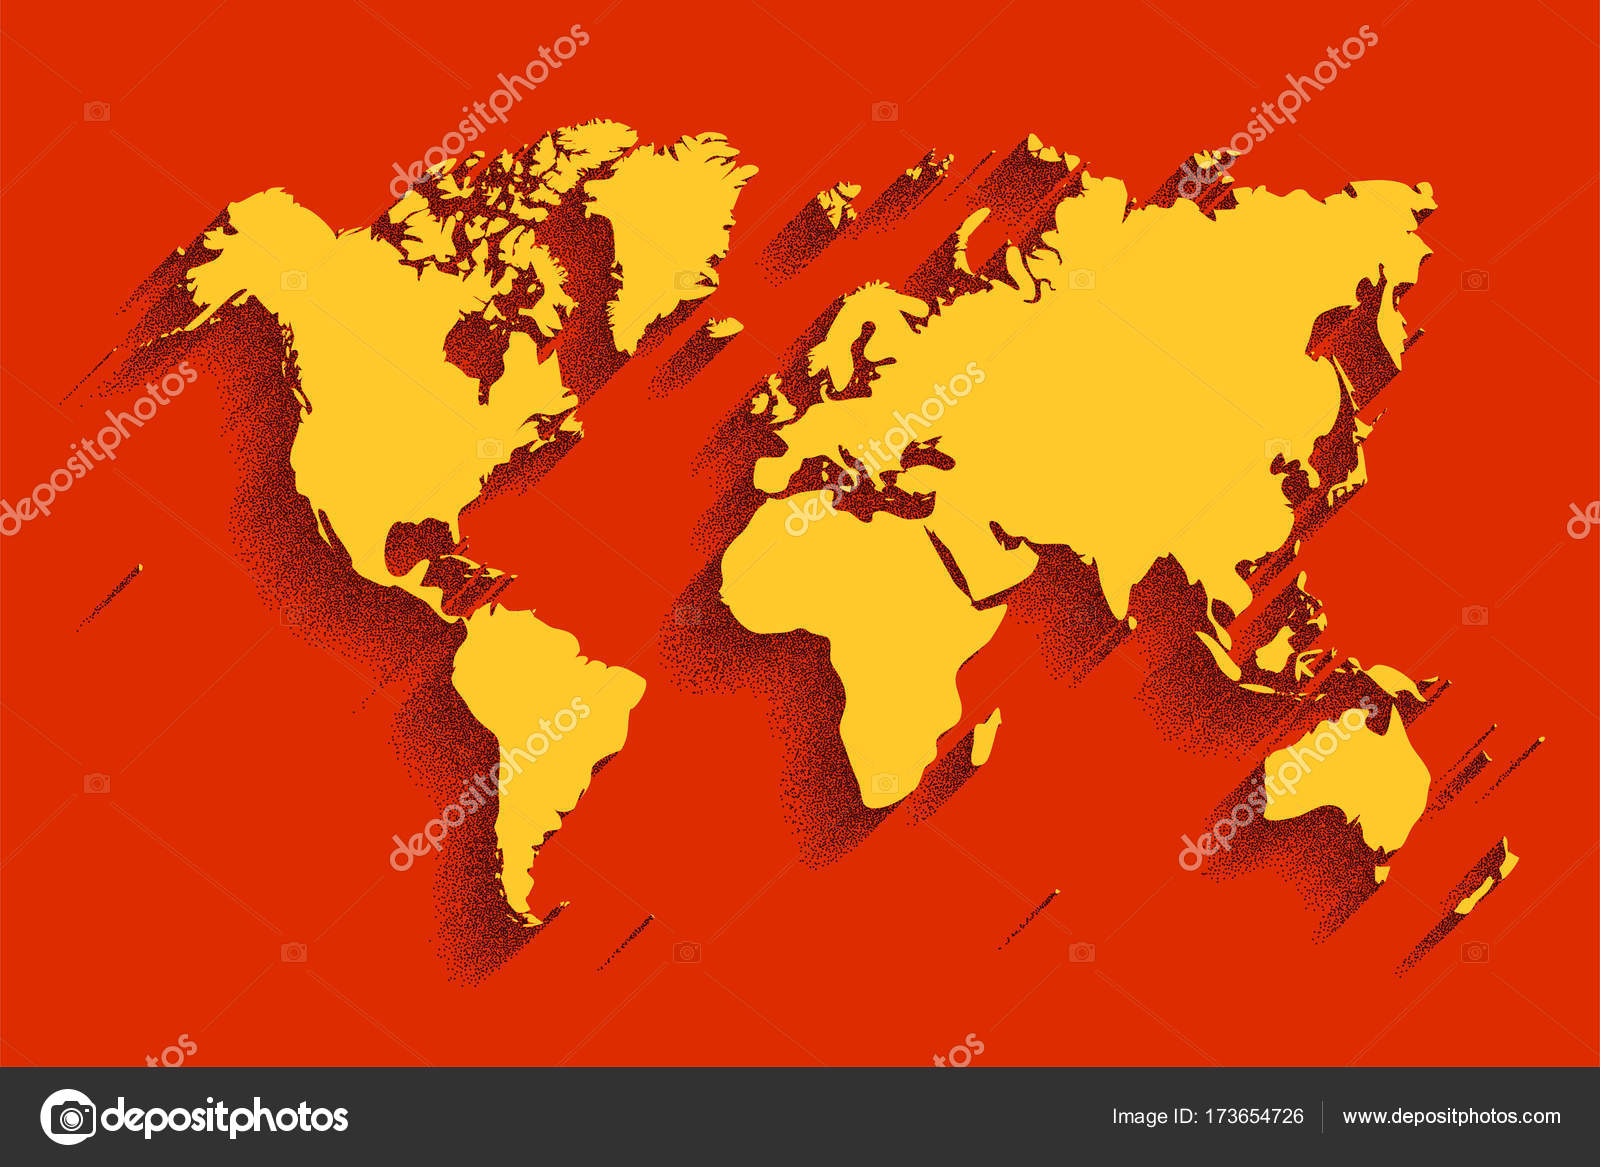 World map vector color background with shadow stock vector world map vector color background with shadow stock vector gumiabroncs Images